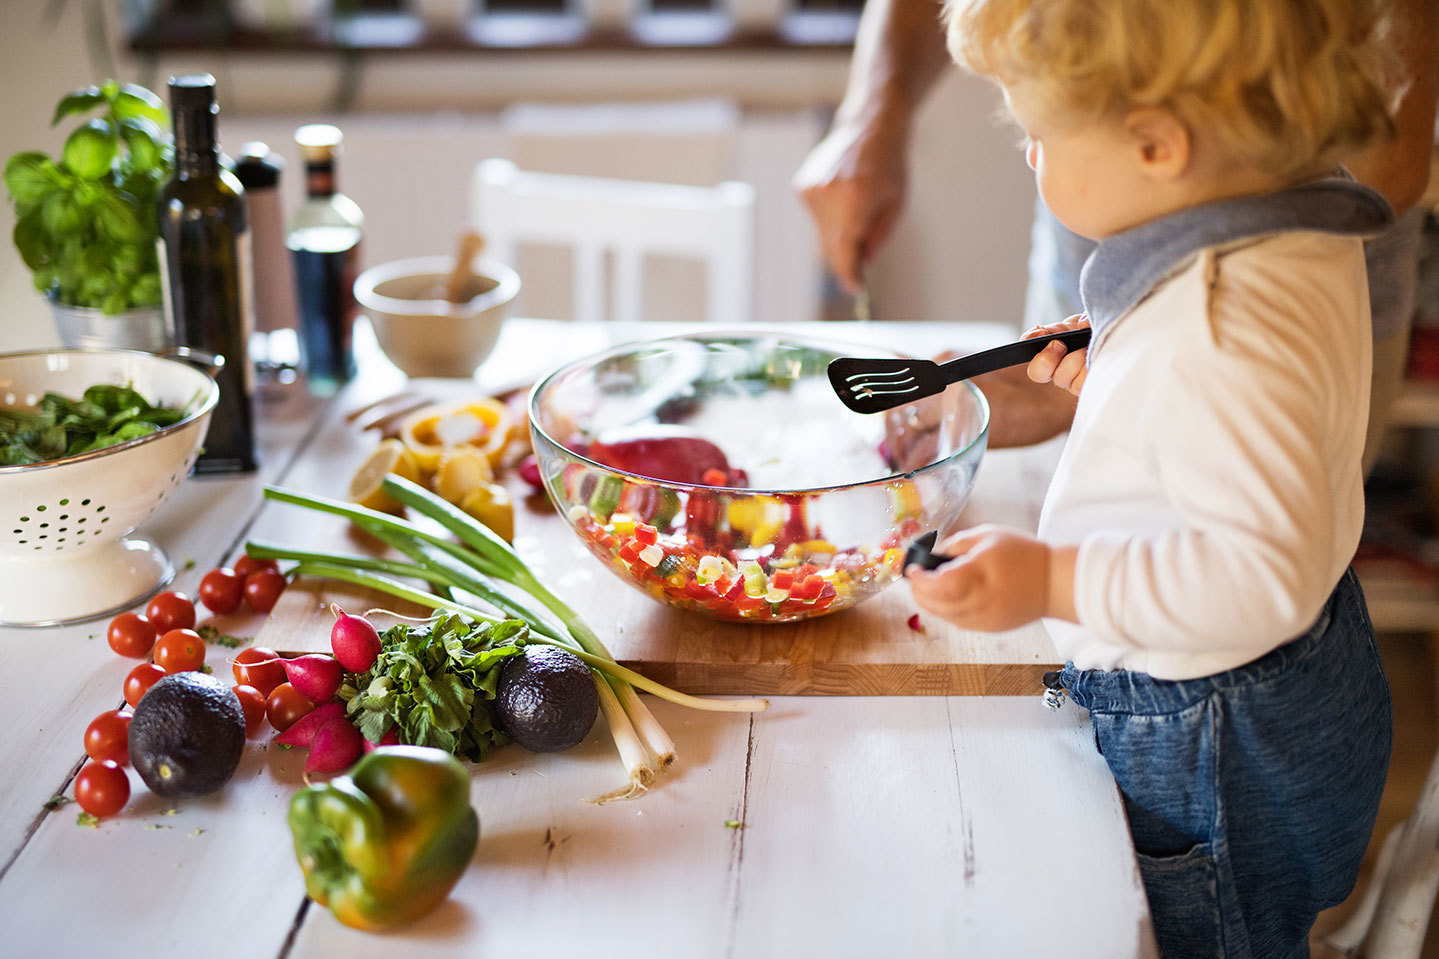 Cooking Skills Every Kid Should Learn by Age 10